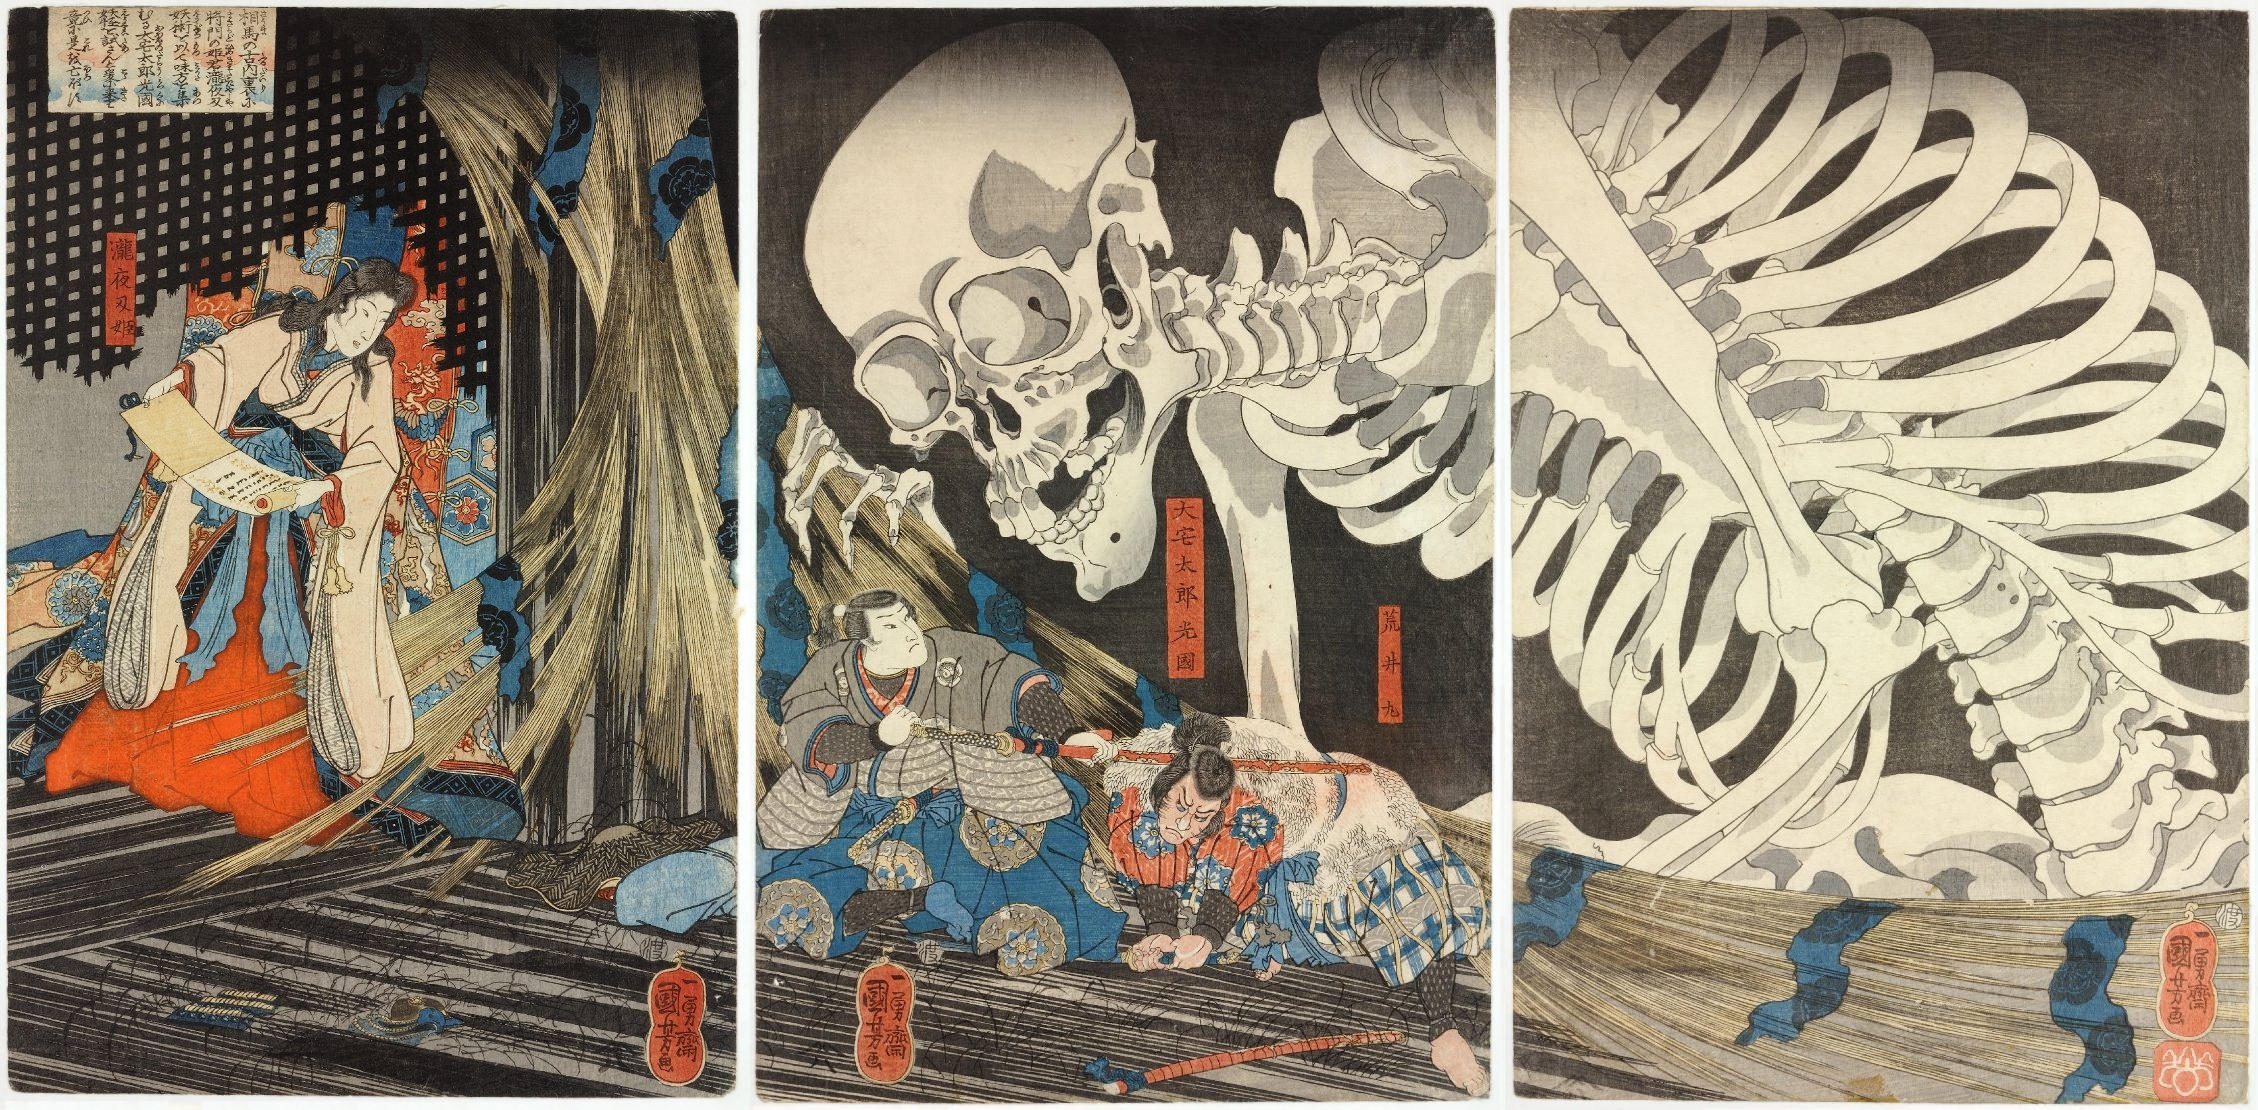 The three tiles in Takiyasha the Witch and the Skeleton Spectre | Ukiyo-e